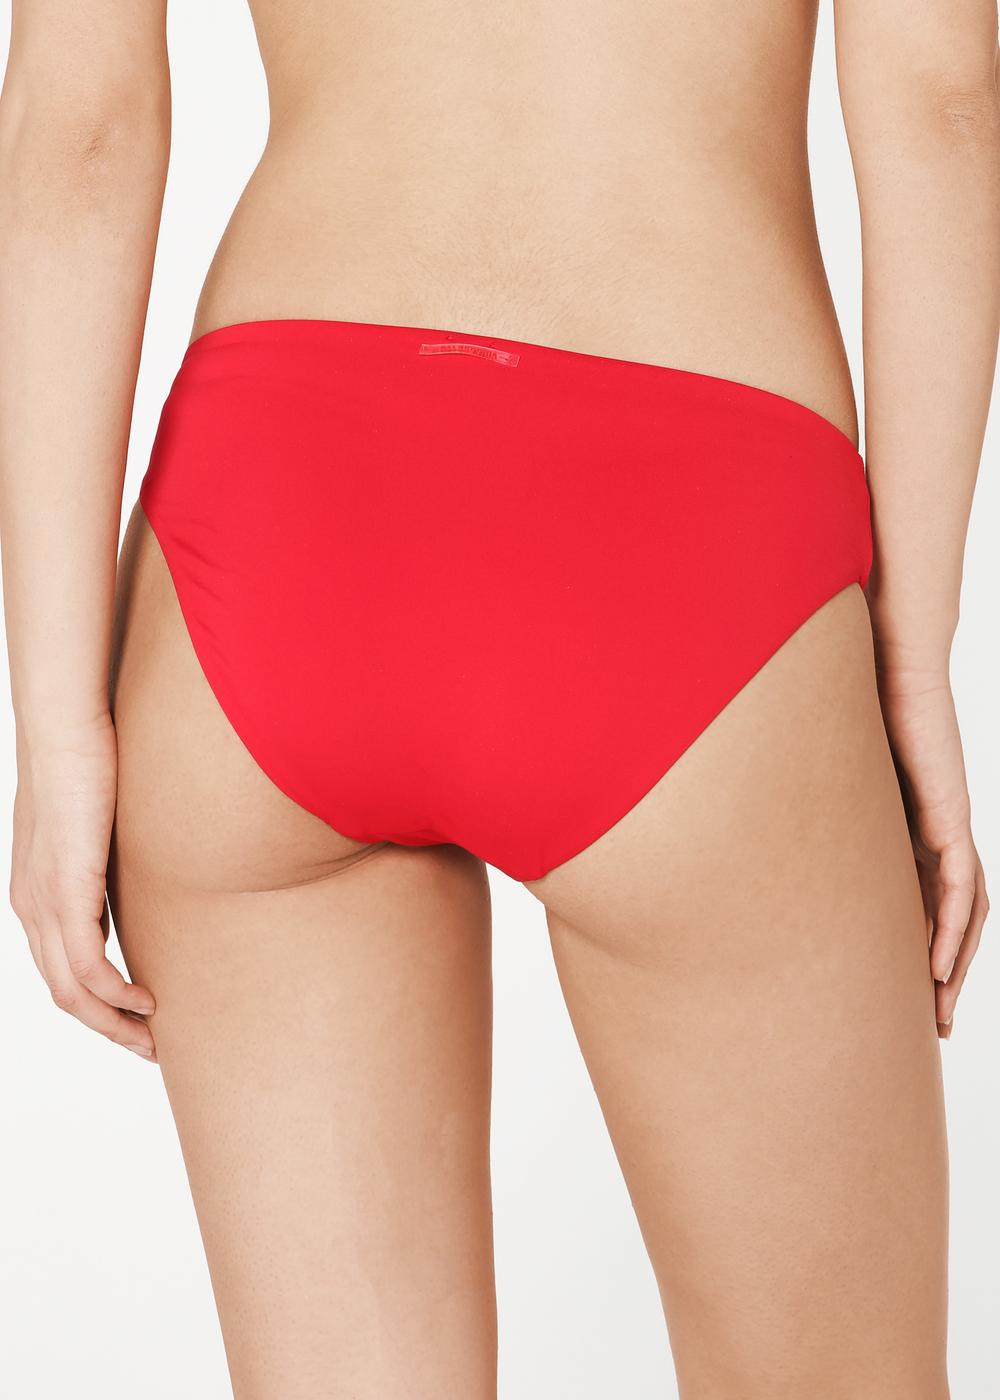 Indonesia High Waist Bikini Bottoms